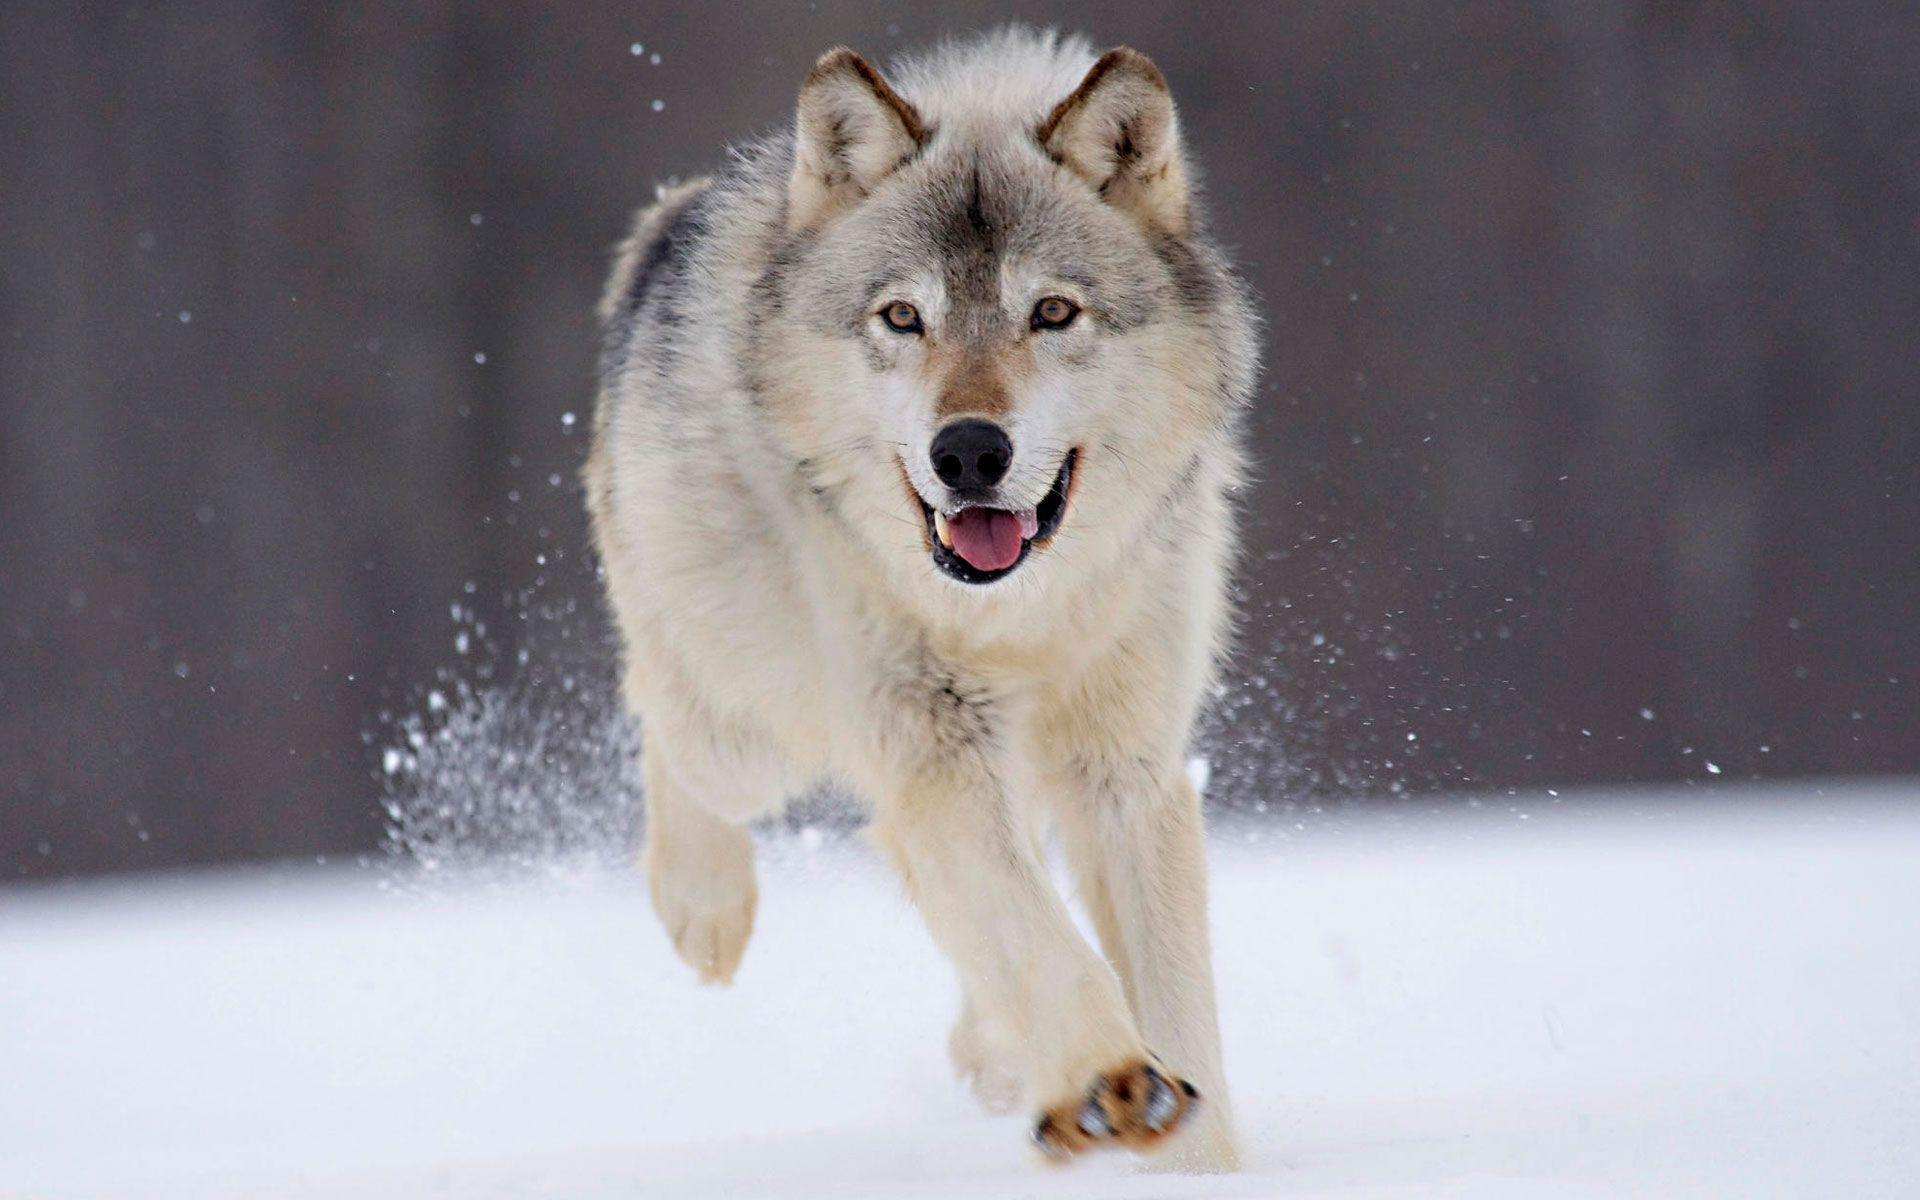 Wallpaper Hd Wolf Images 6 HD Wallpapers | Hdwalljoy.